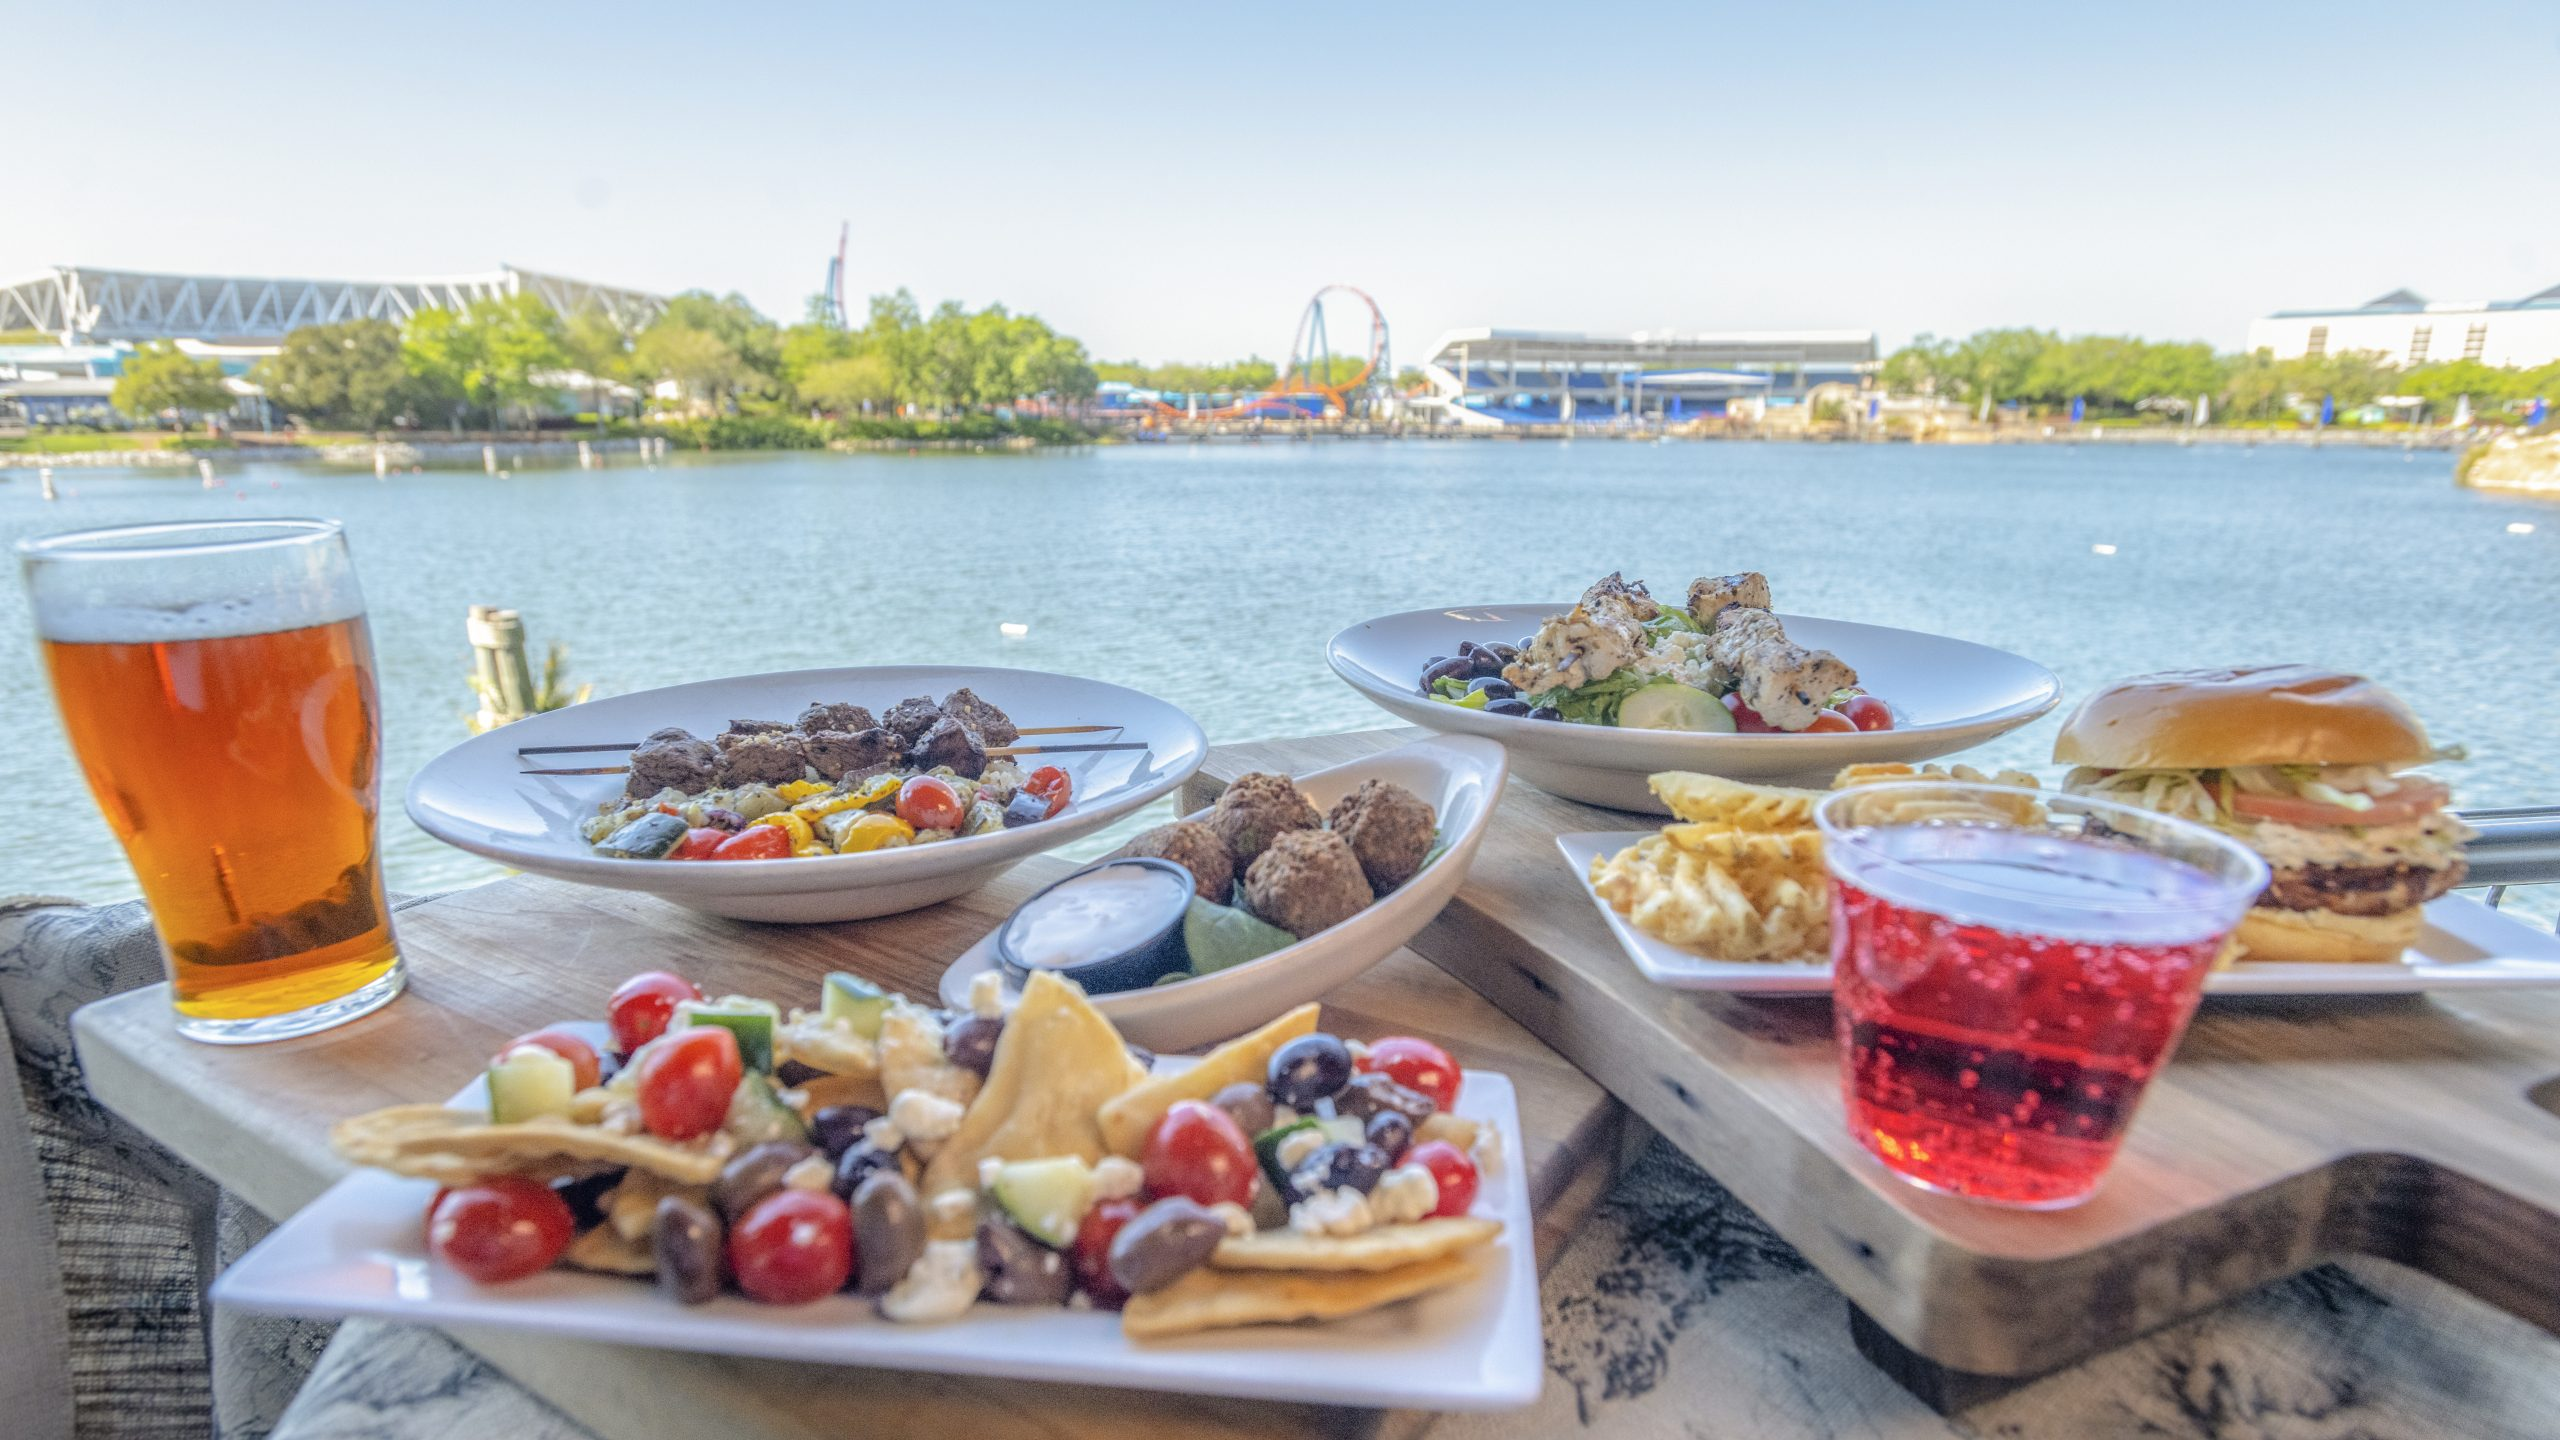 Springtime at SeaWorld Orlando Features New Restaurants and Fan Favorites